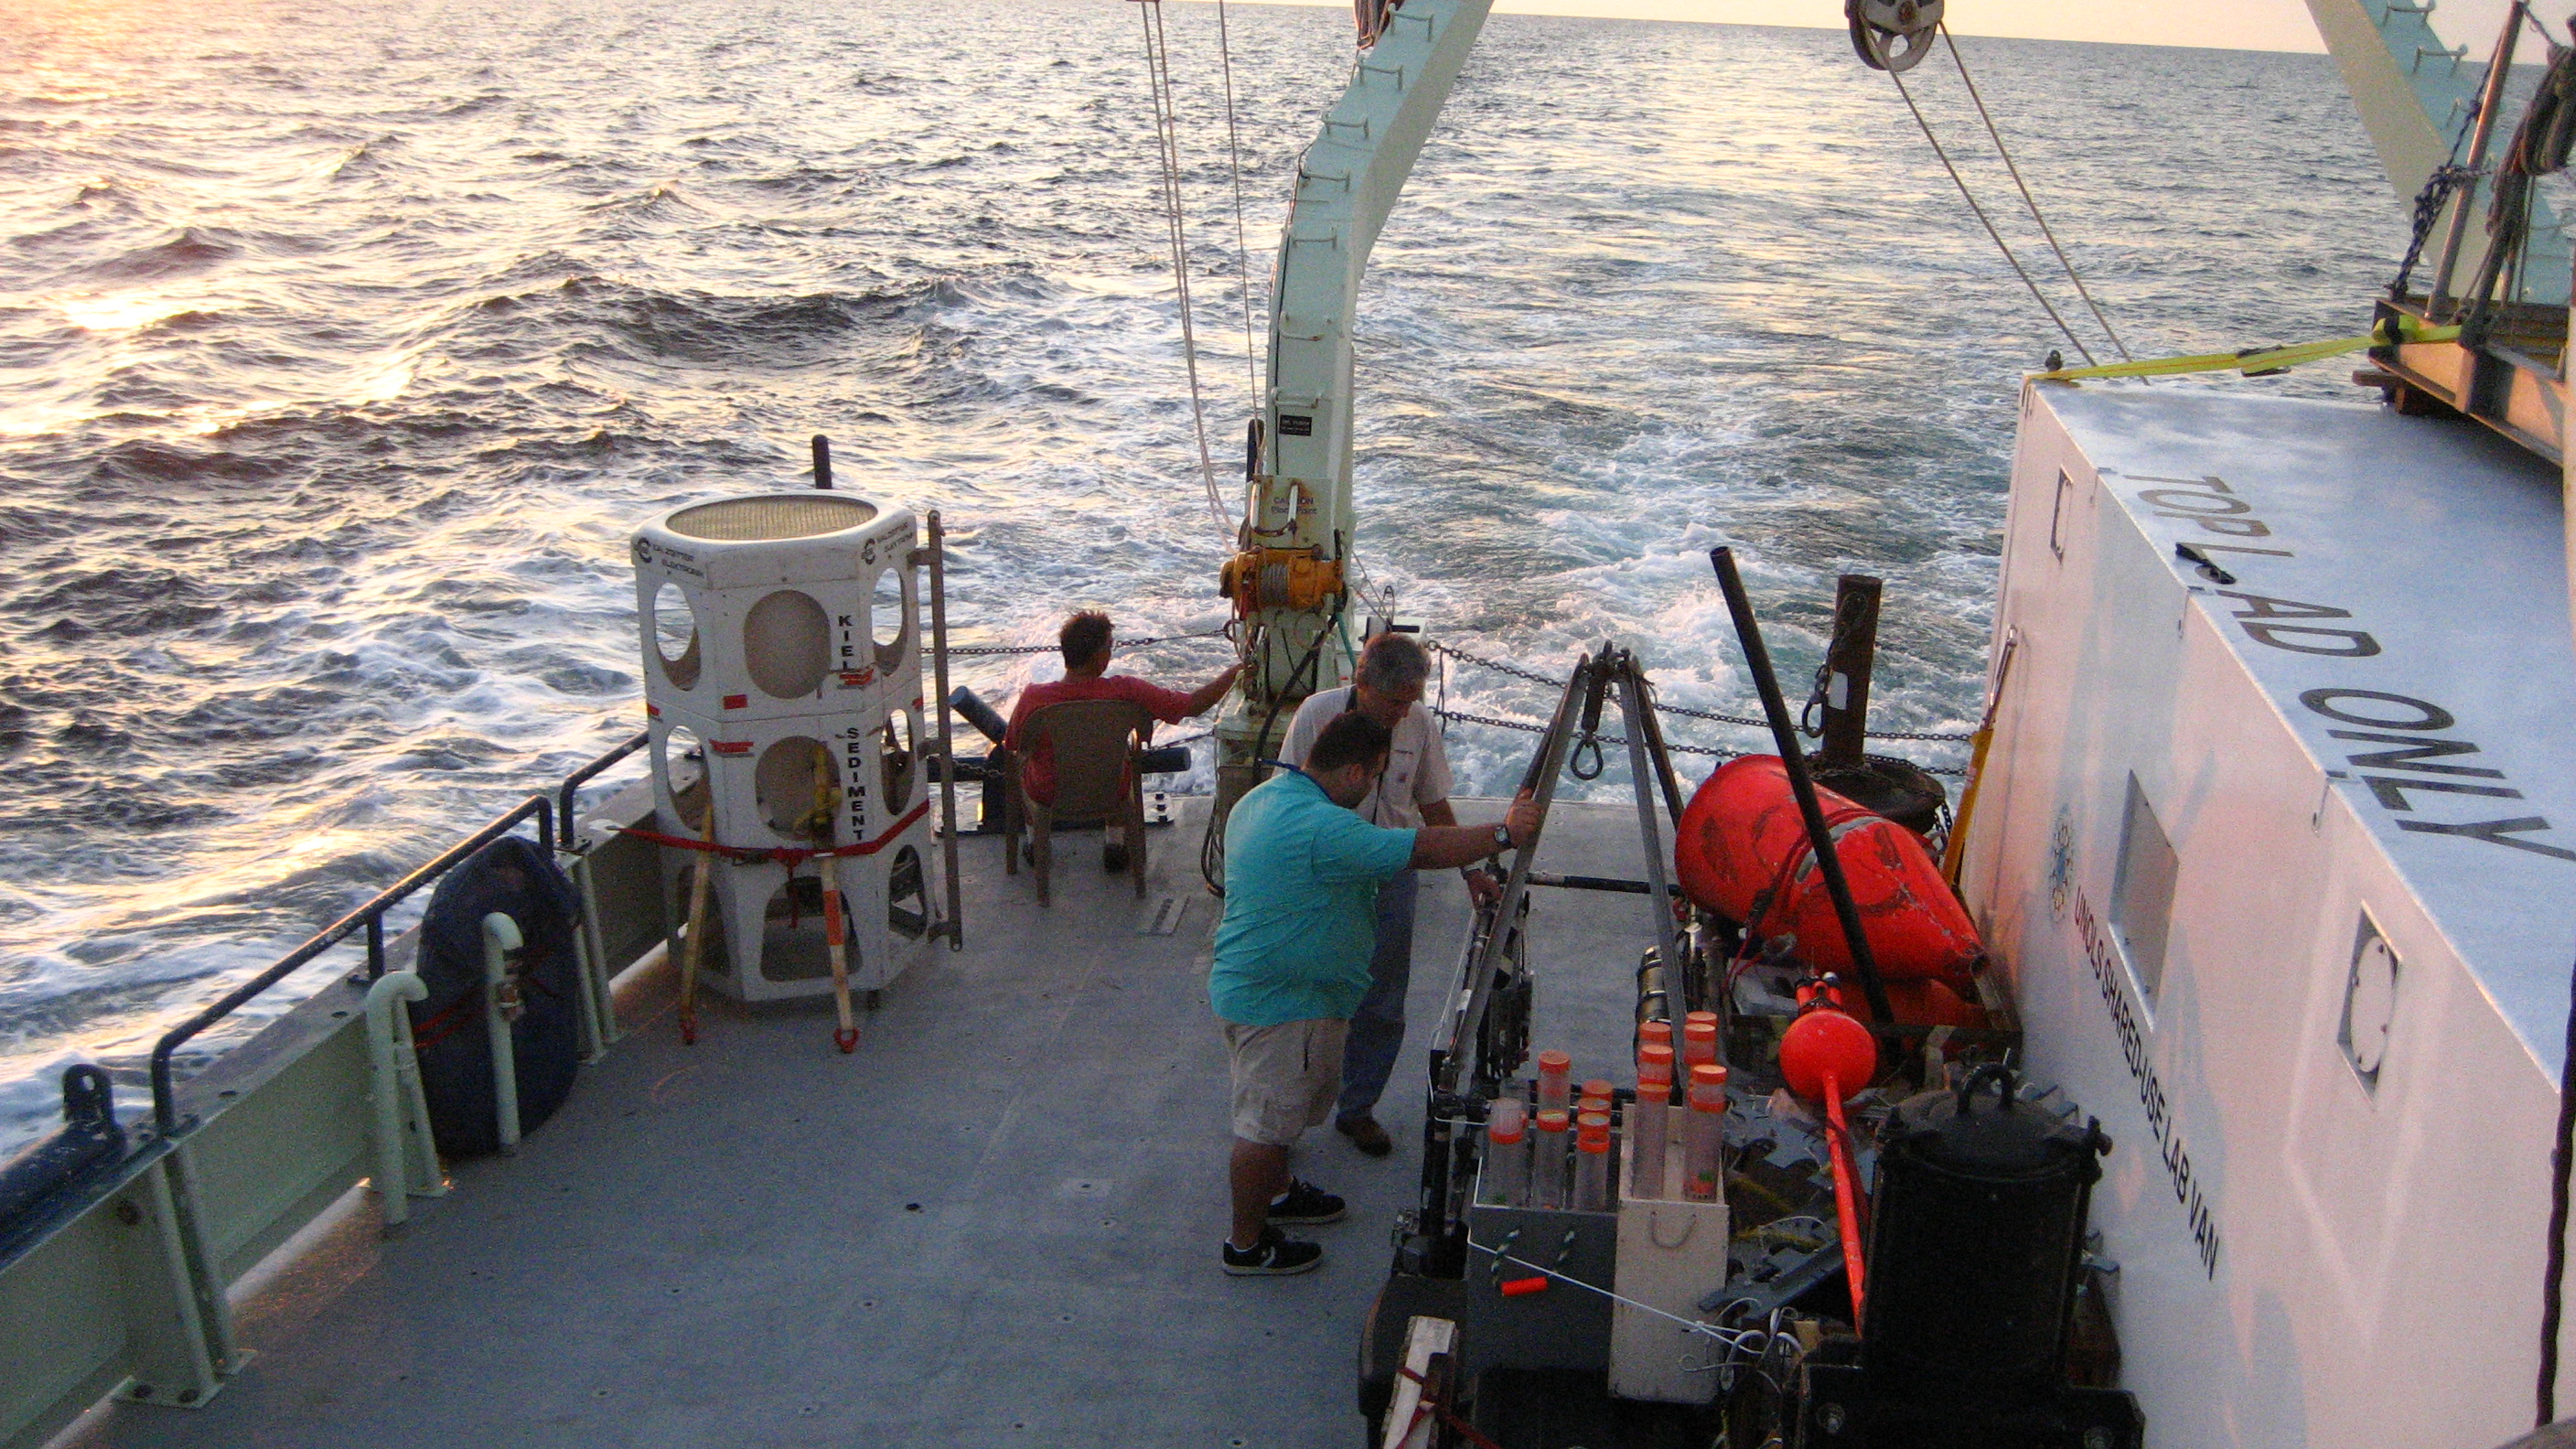 <div style='color:#000000;'><br /><br /><h2>Kiel sediment trap strapped to the back deck of the research vessel.</h2>(C)&nbsp;ECOGIG</div>